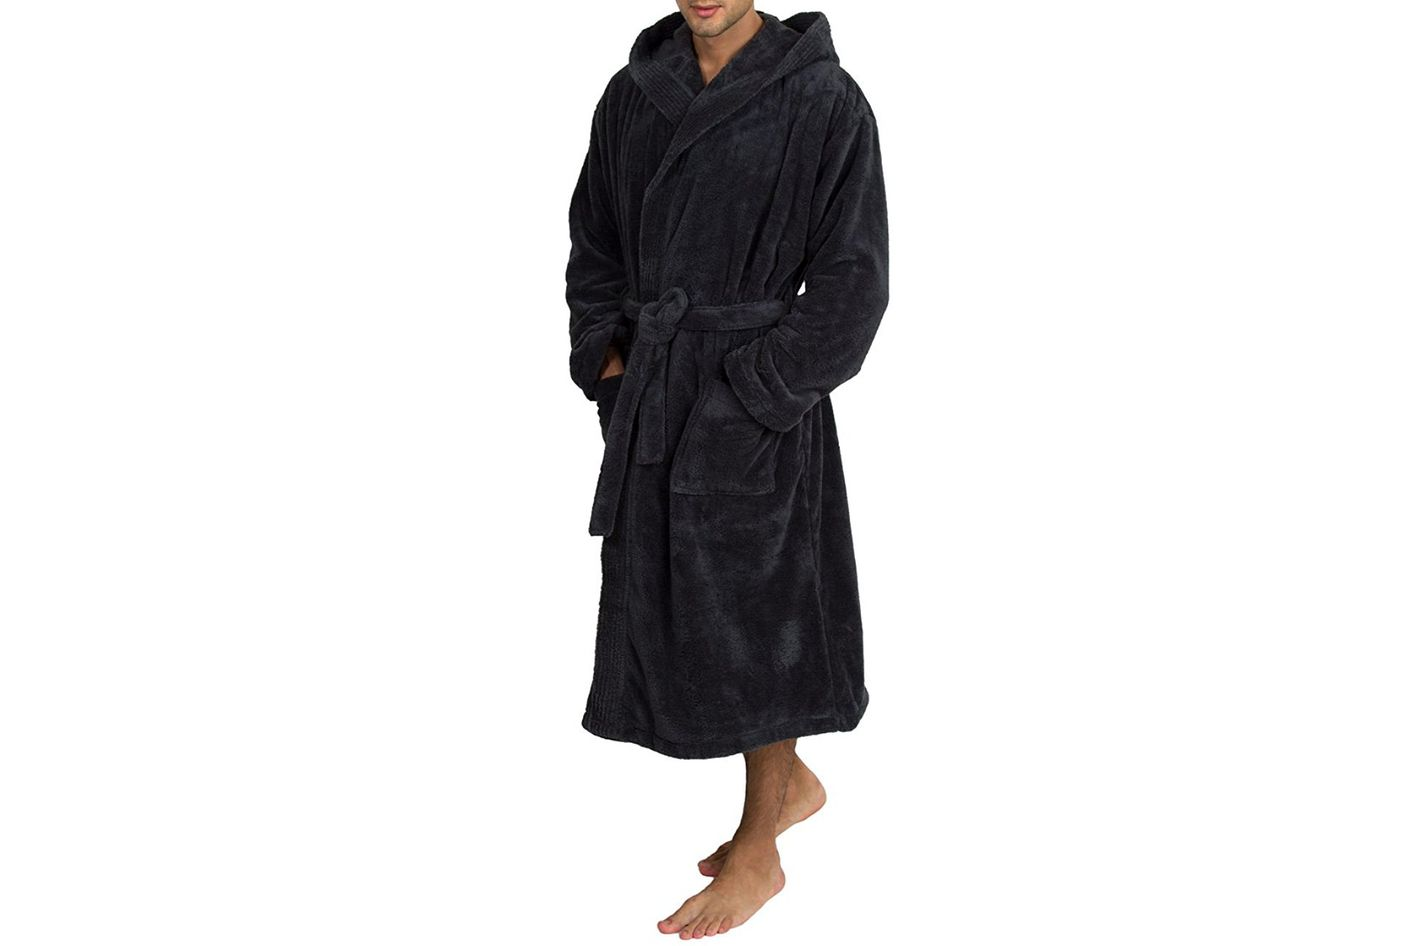 63922add48 TowelSelections Men s Fleece Bathrobe at Amazon